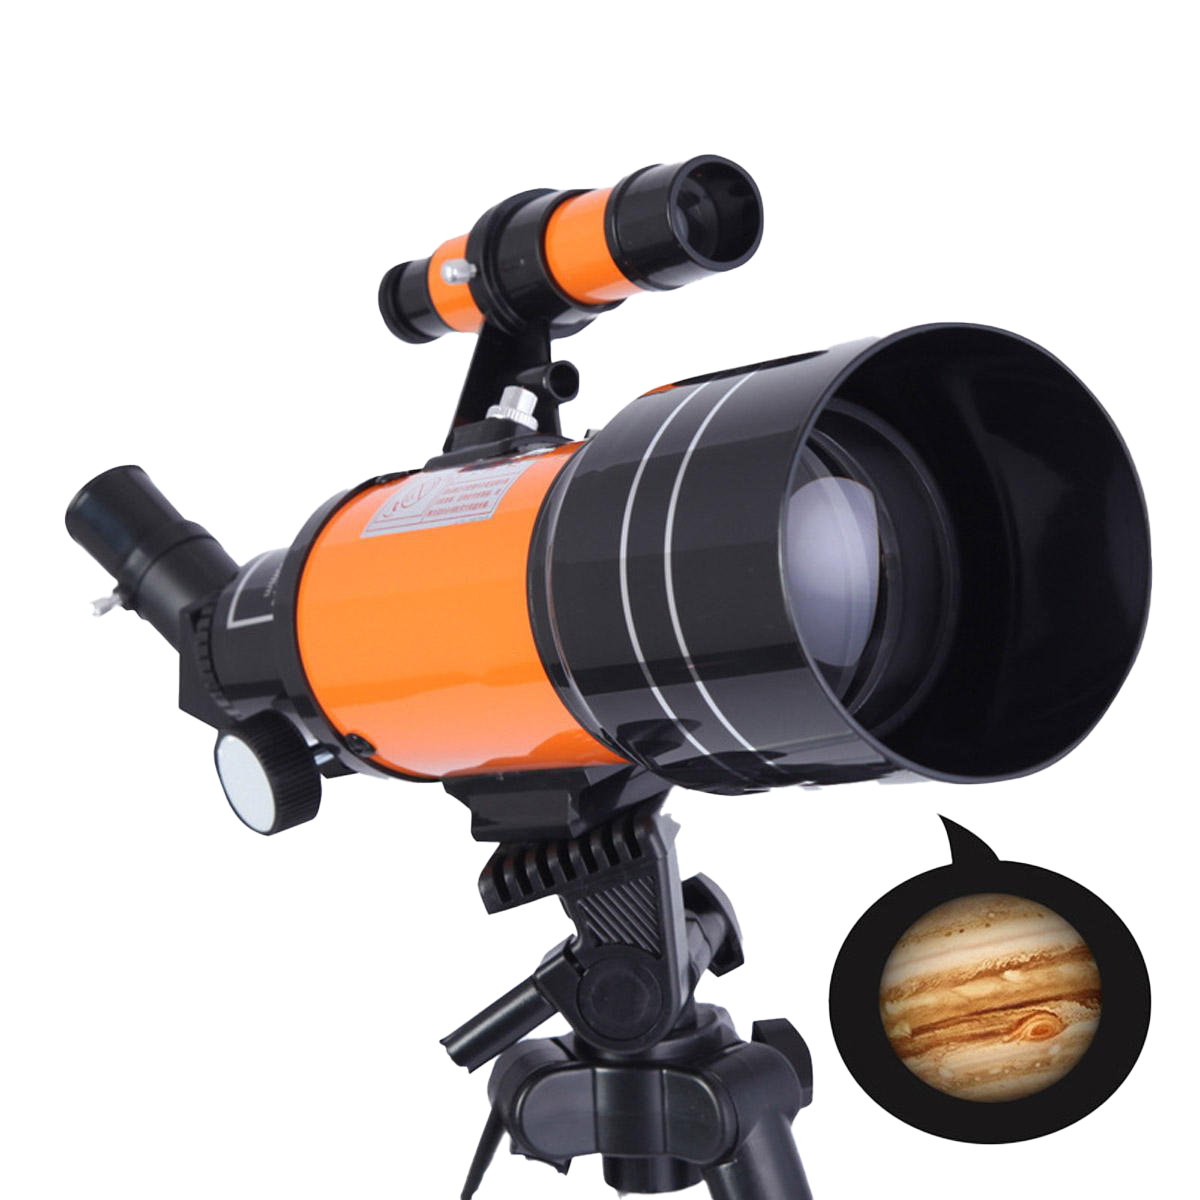 Telescope PNG High Quality Image